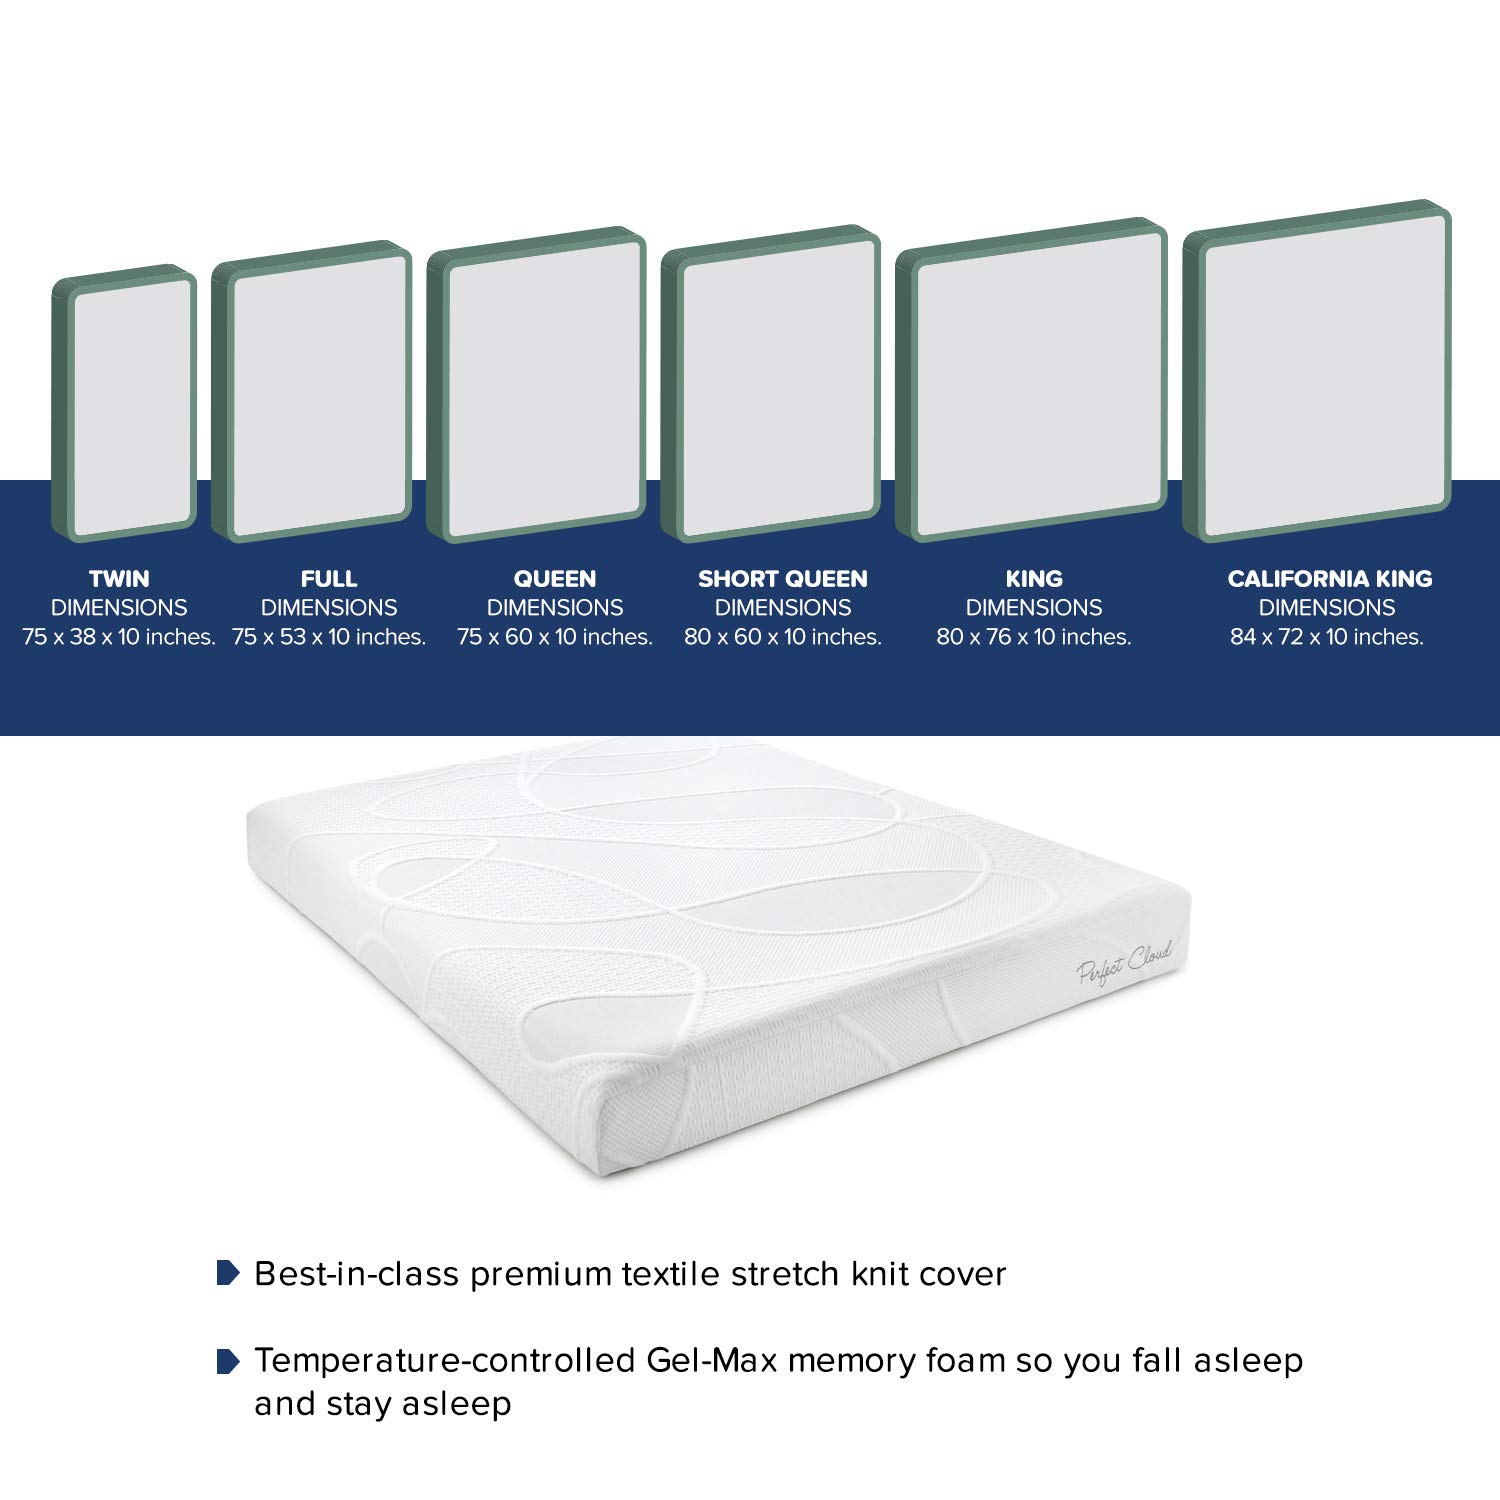 UltraPlush Gel-Max Memory Foam Mattress Topratedhomeproducts features